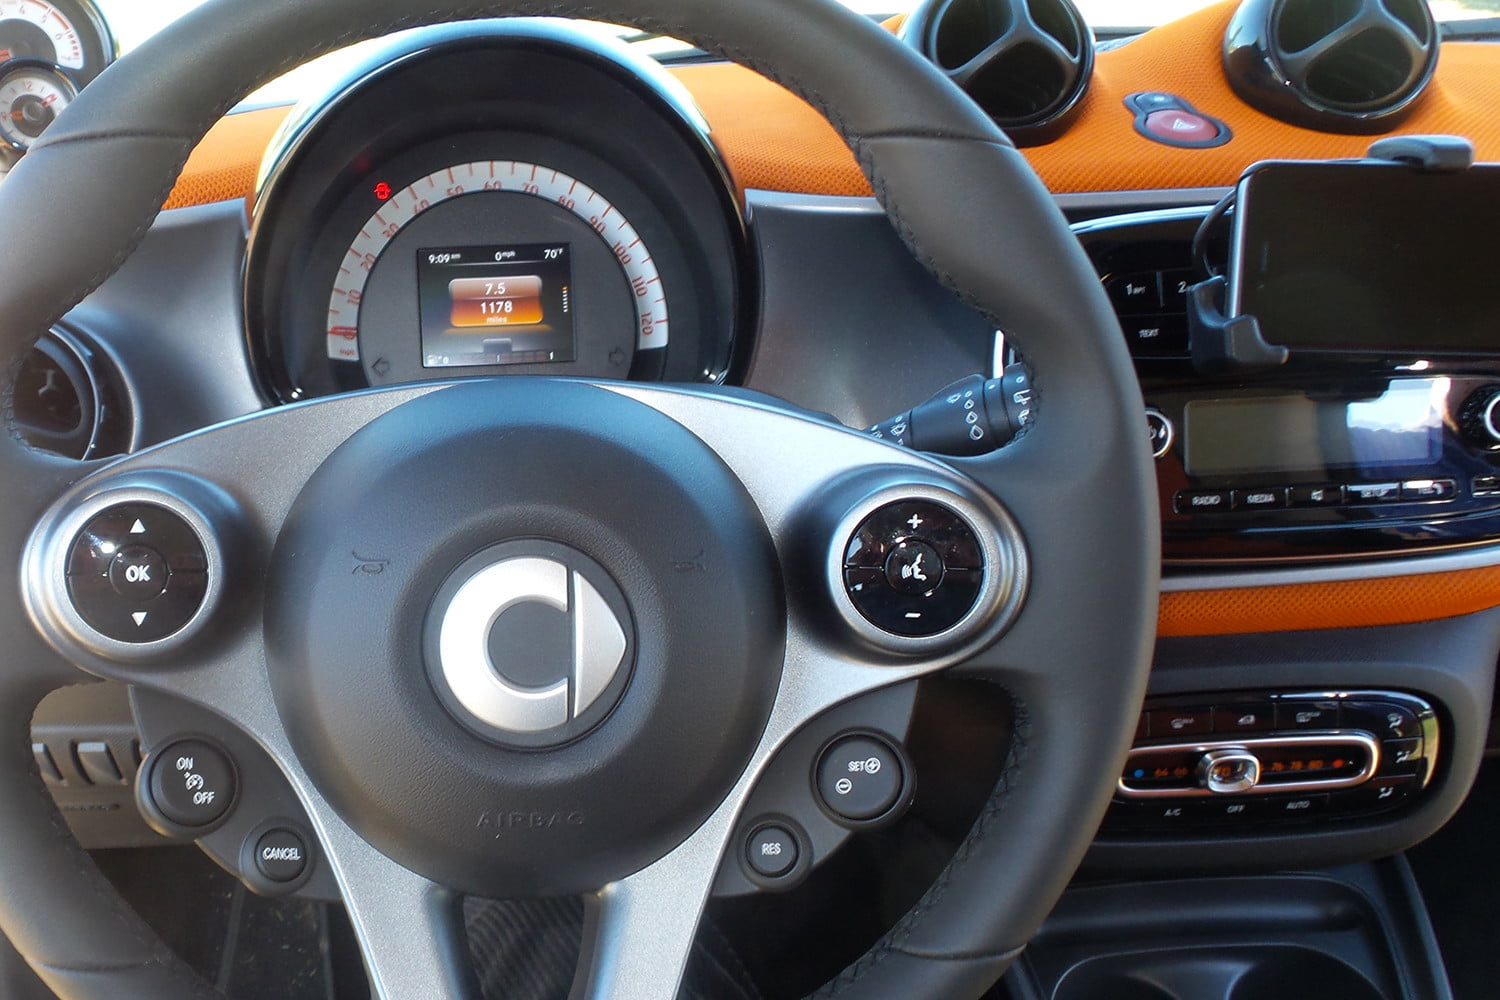 2016 Smart Fortwo Review | Digital Trends